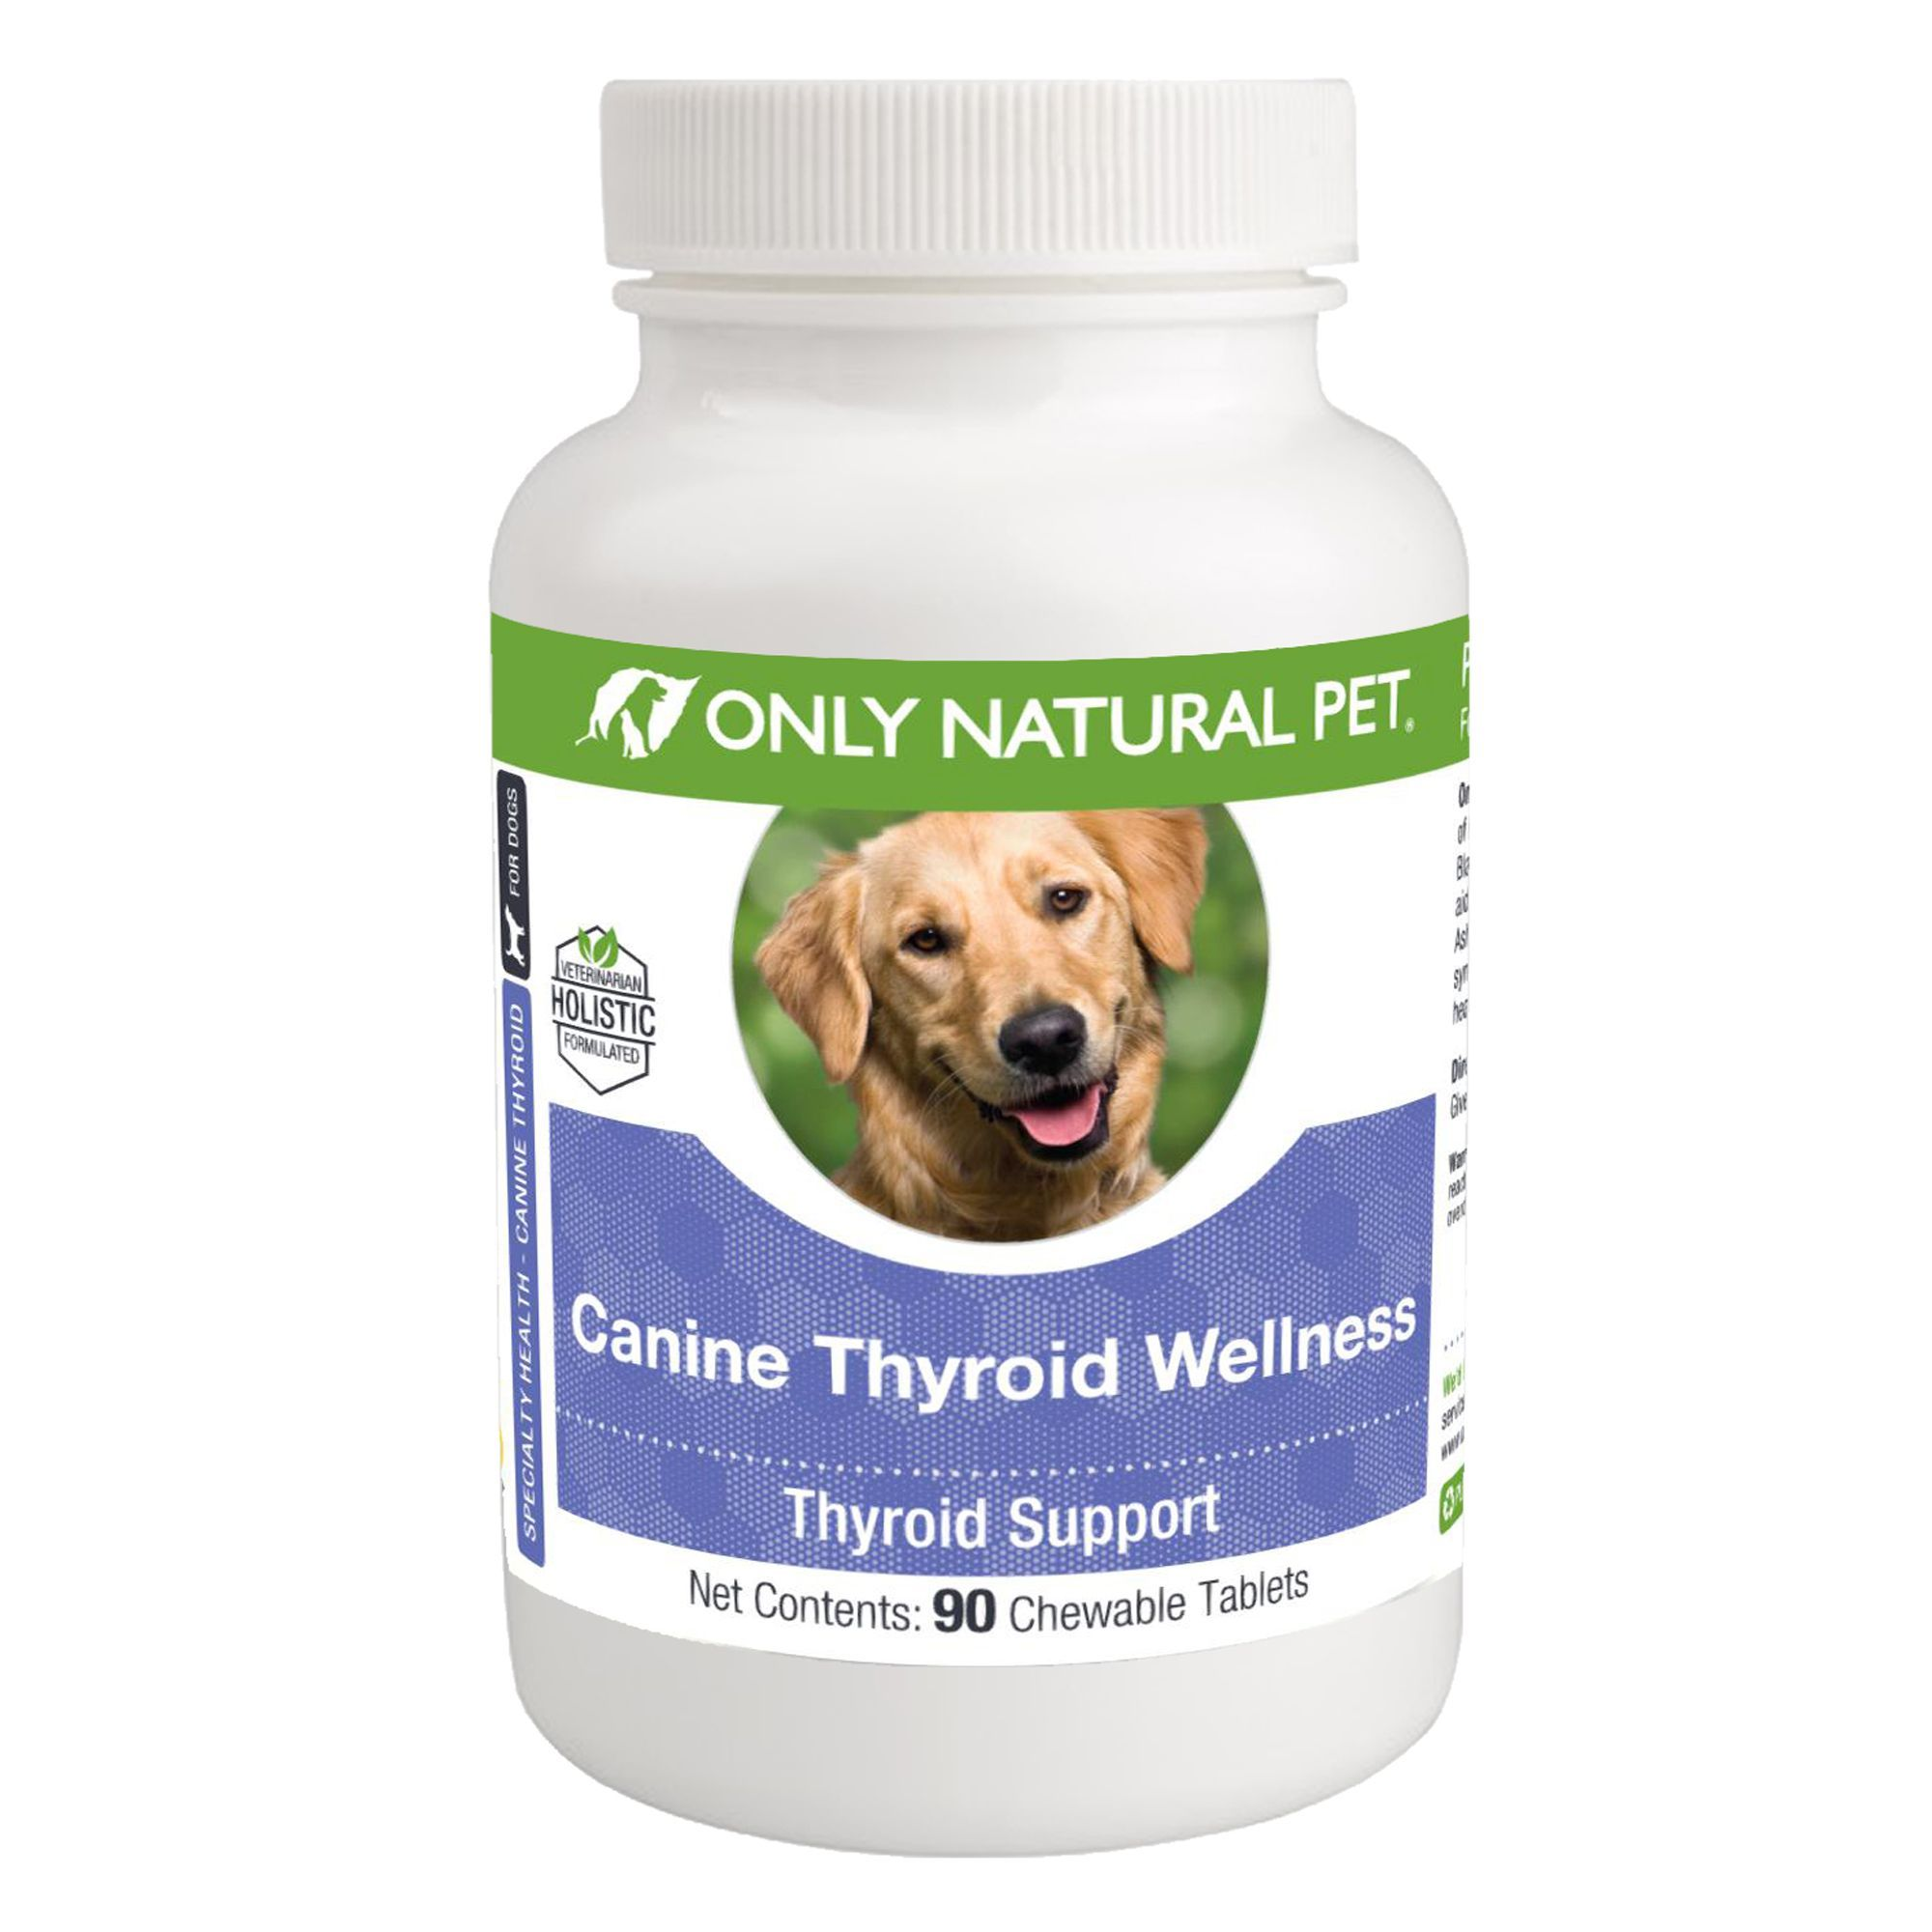 Only Natural Pet Canine Thyroid Wellness Chewable Tablets In 2020 Natural Pet Dog Supplements Pets